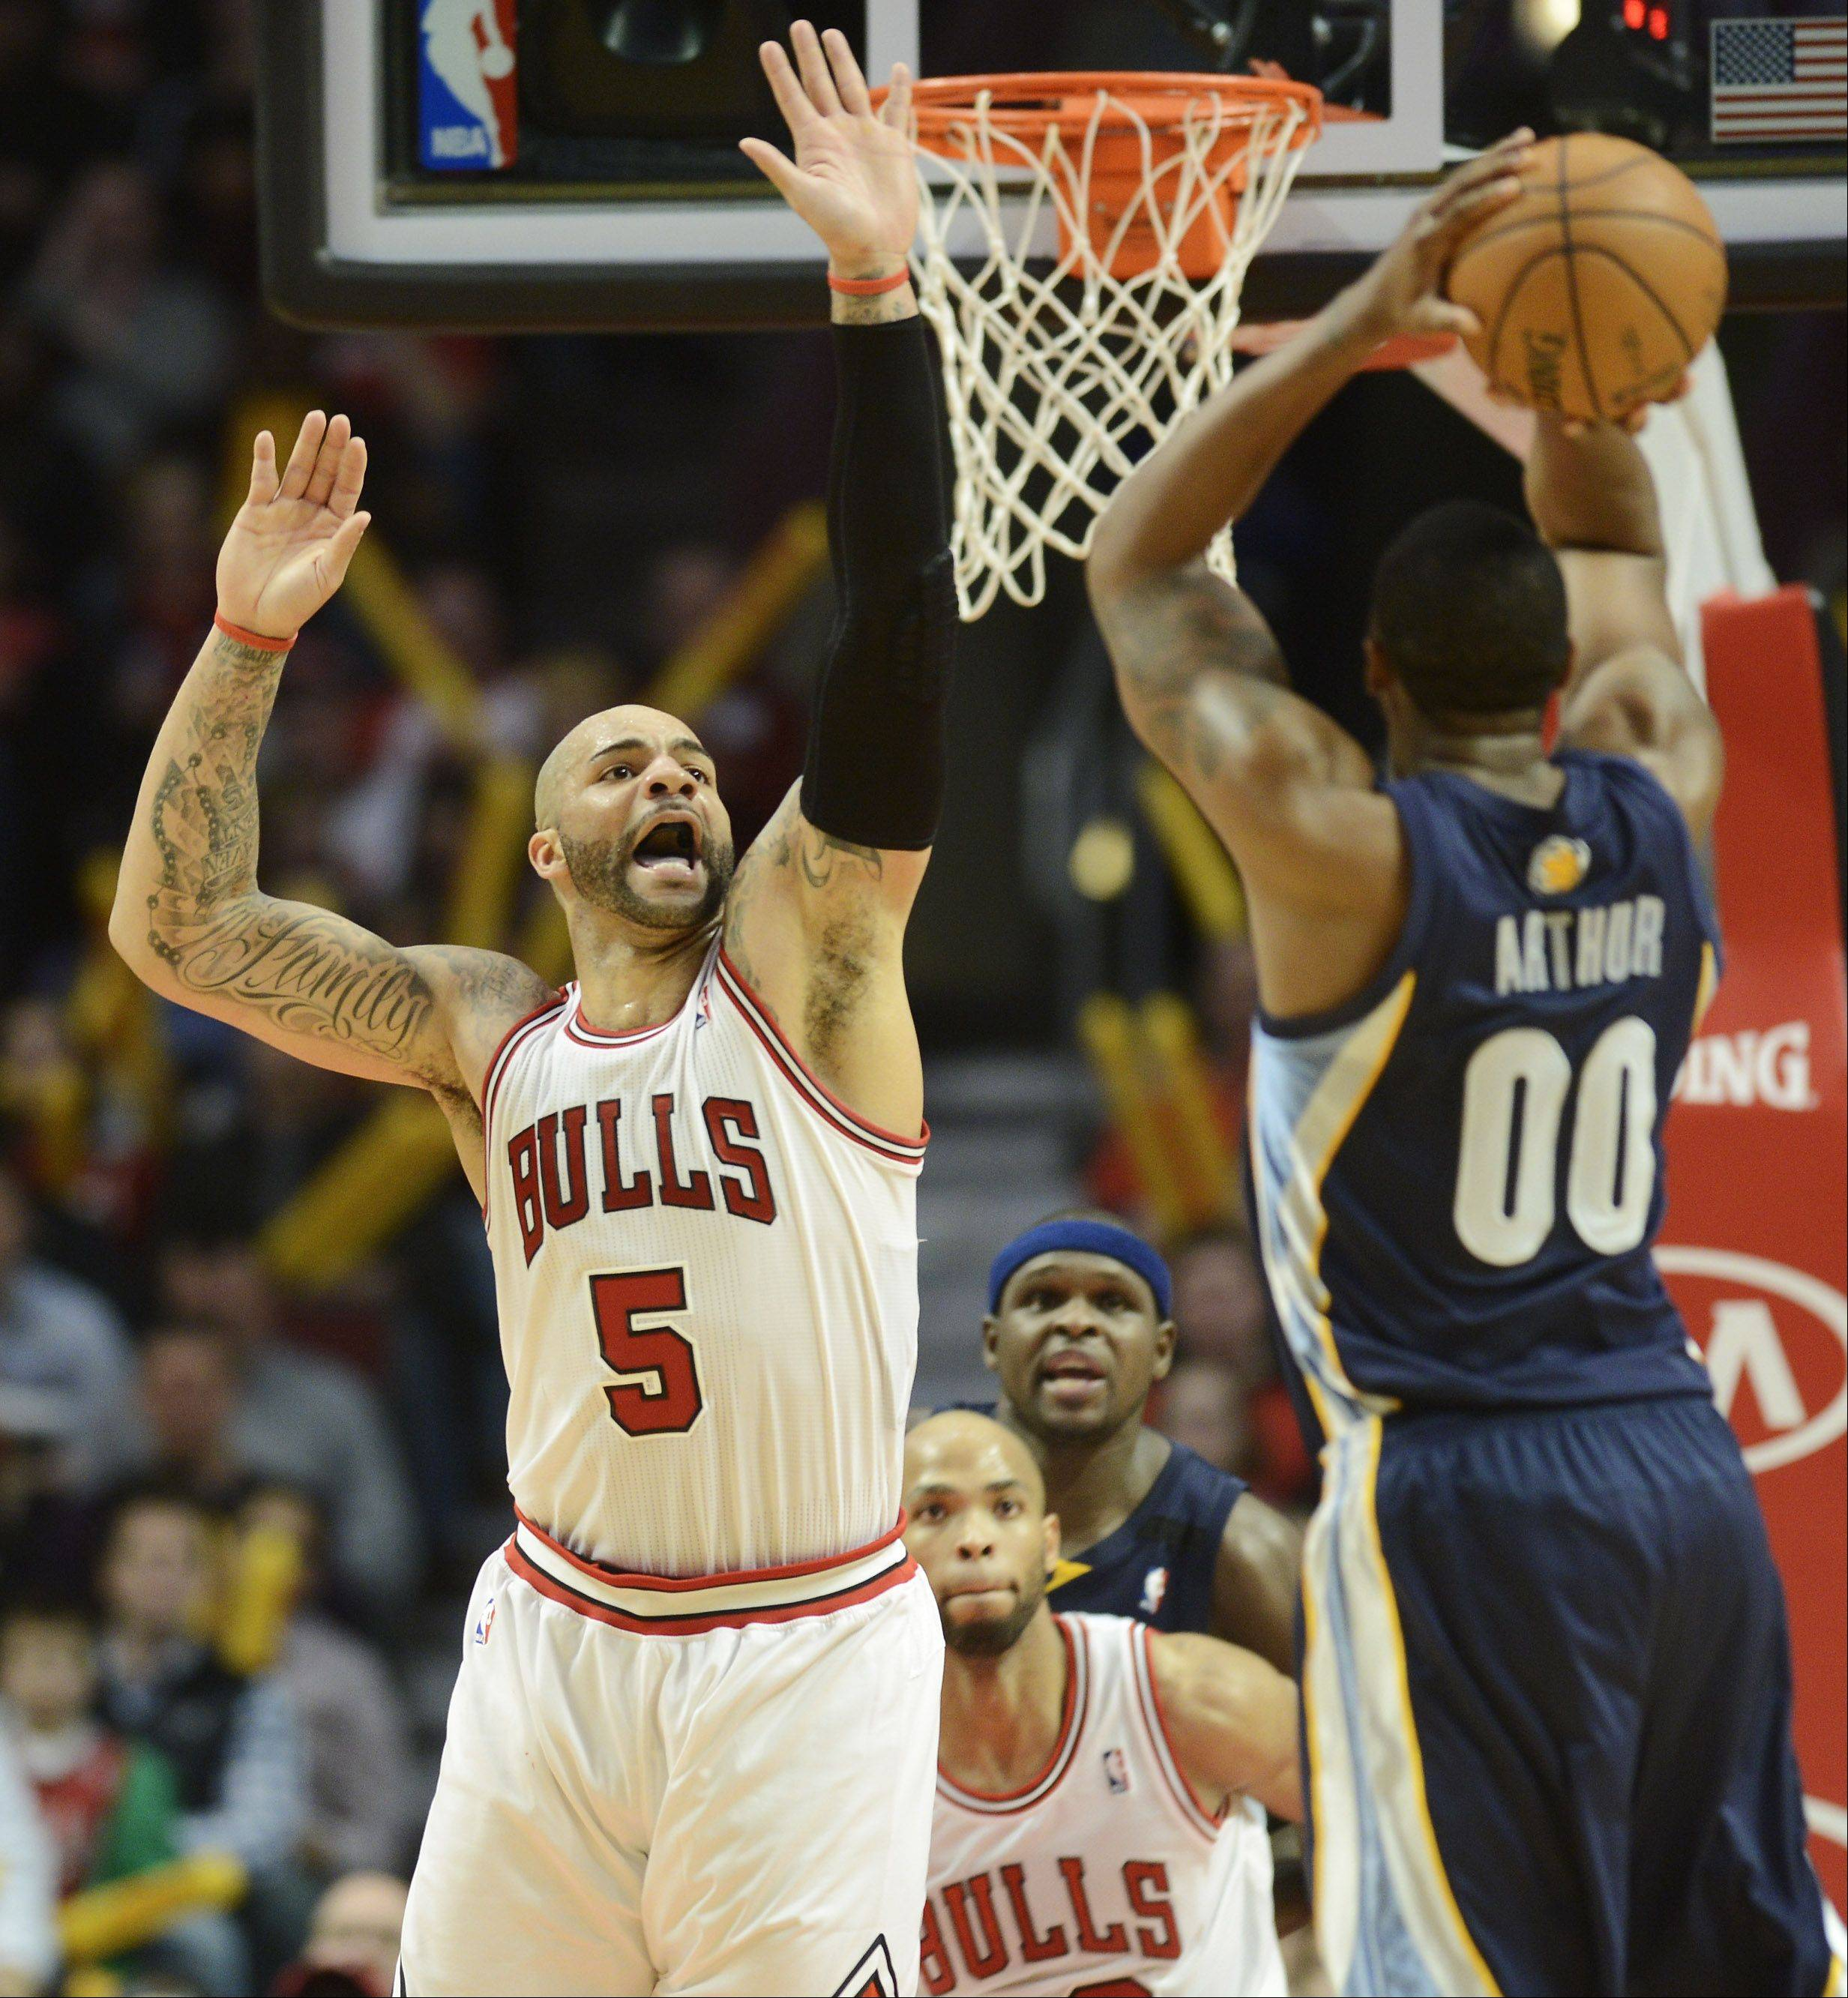 Carlos Boozer of the Bulls gets a hand up on defense against Darrell Arthur of the Memphis Grizzlies.